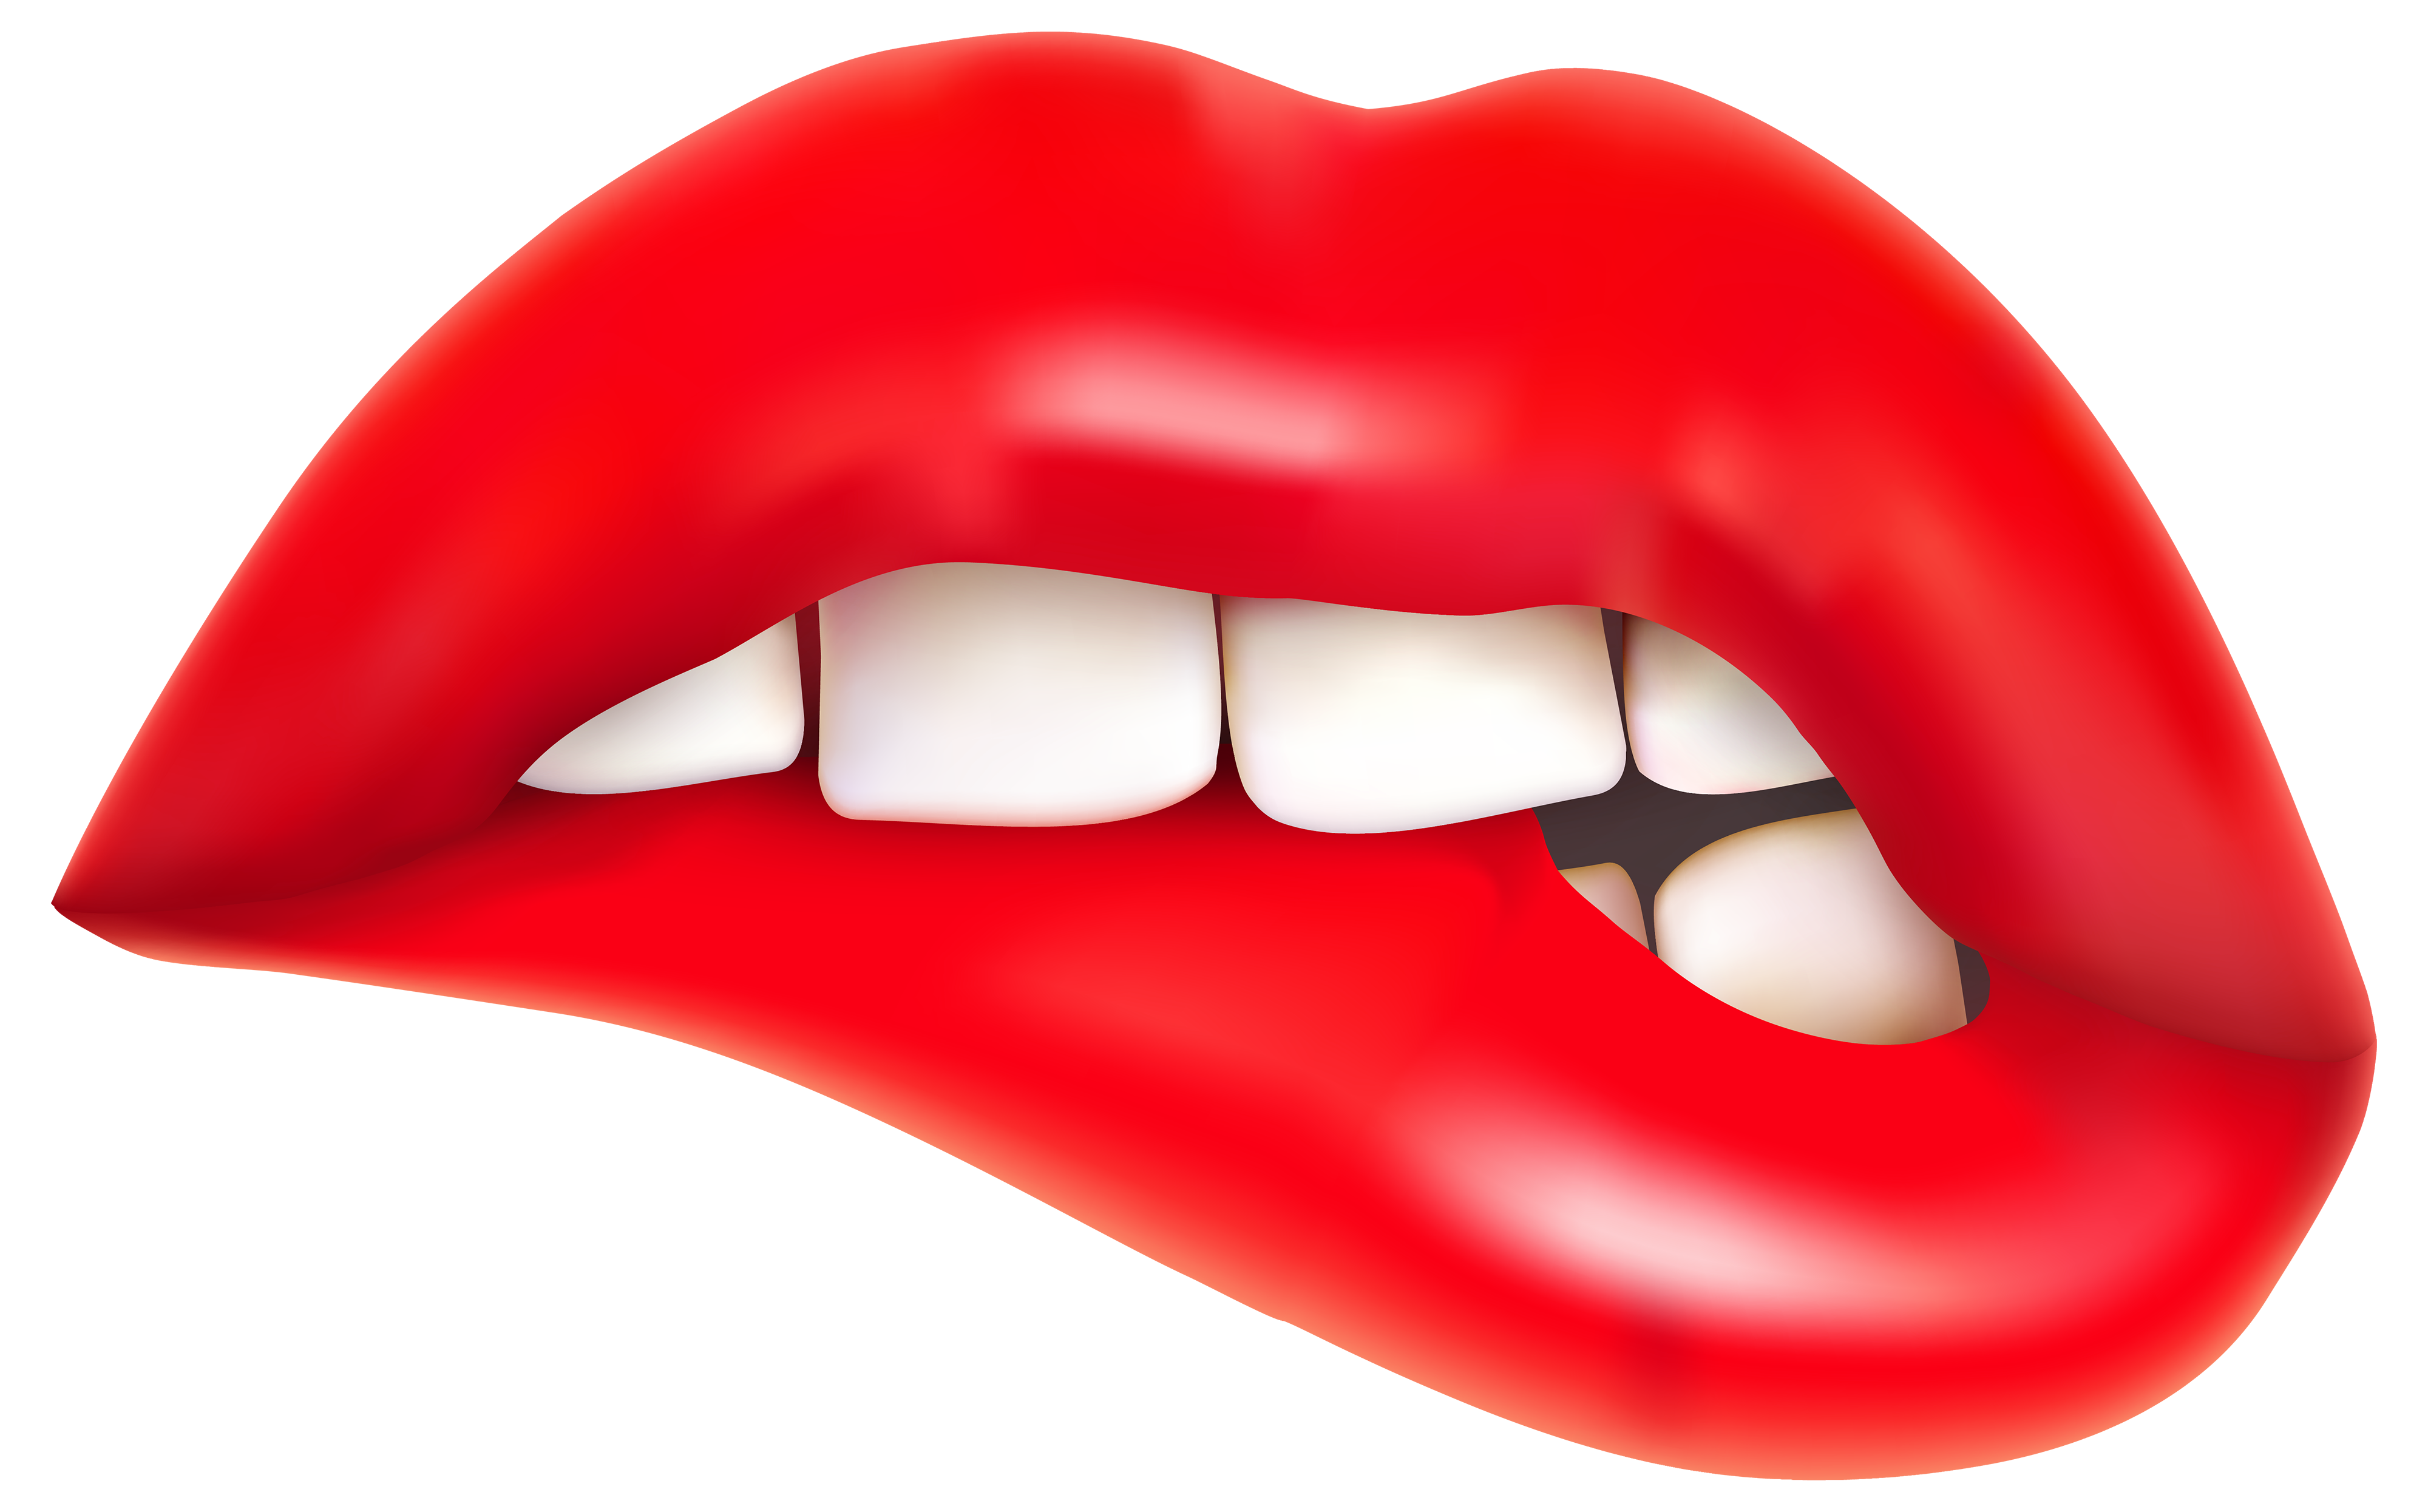 Smile lips clipart free clipa